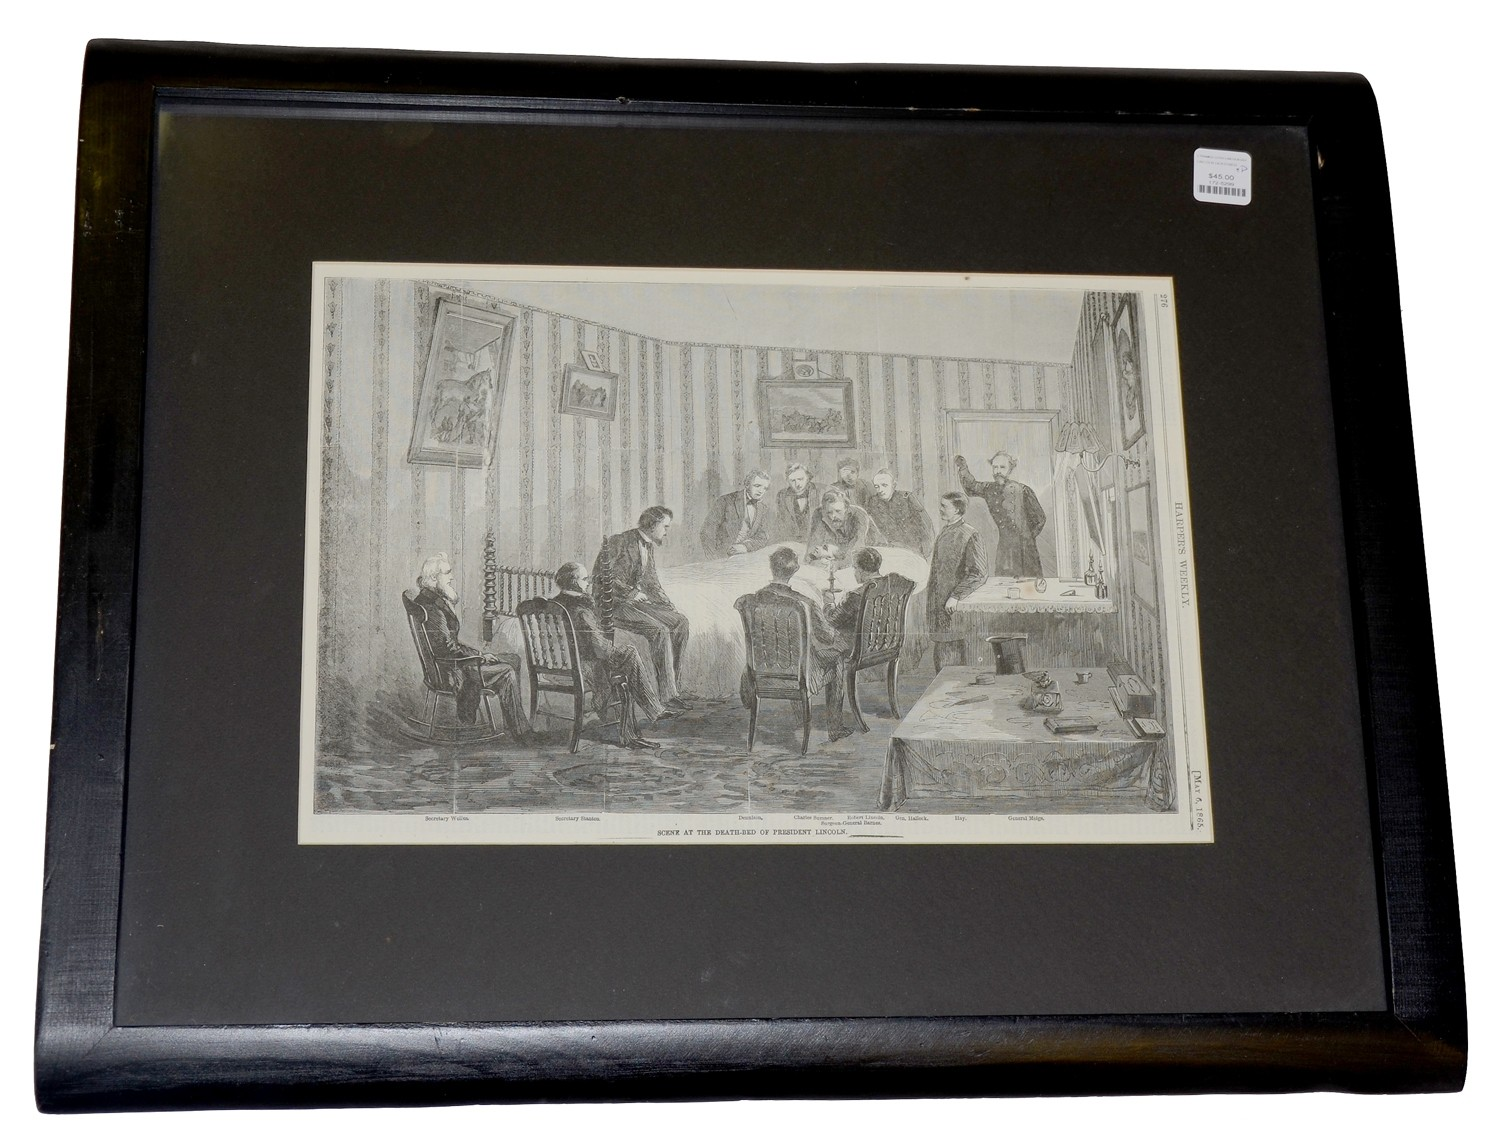 FRAMED LINCOLN DEATHBED ENGRAVING